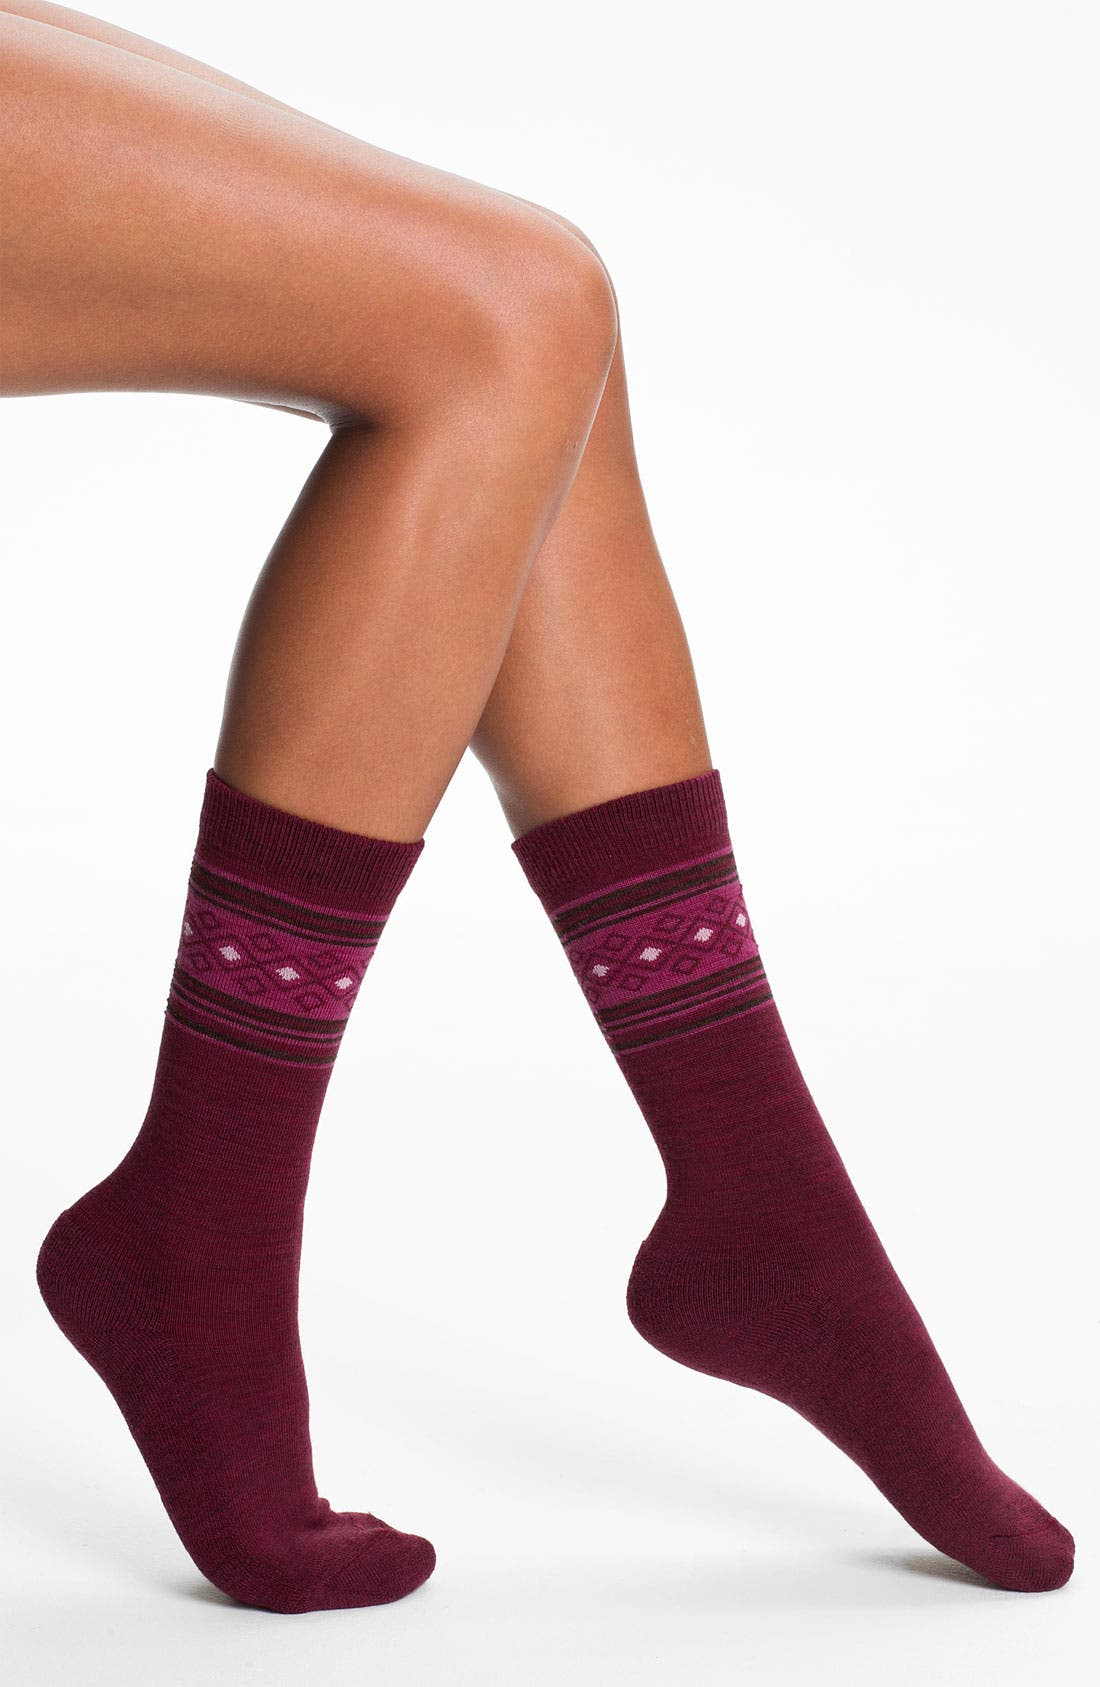 Alternate Image 1 Selected - Smartwool 'Chinchero' Socks